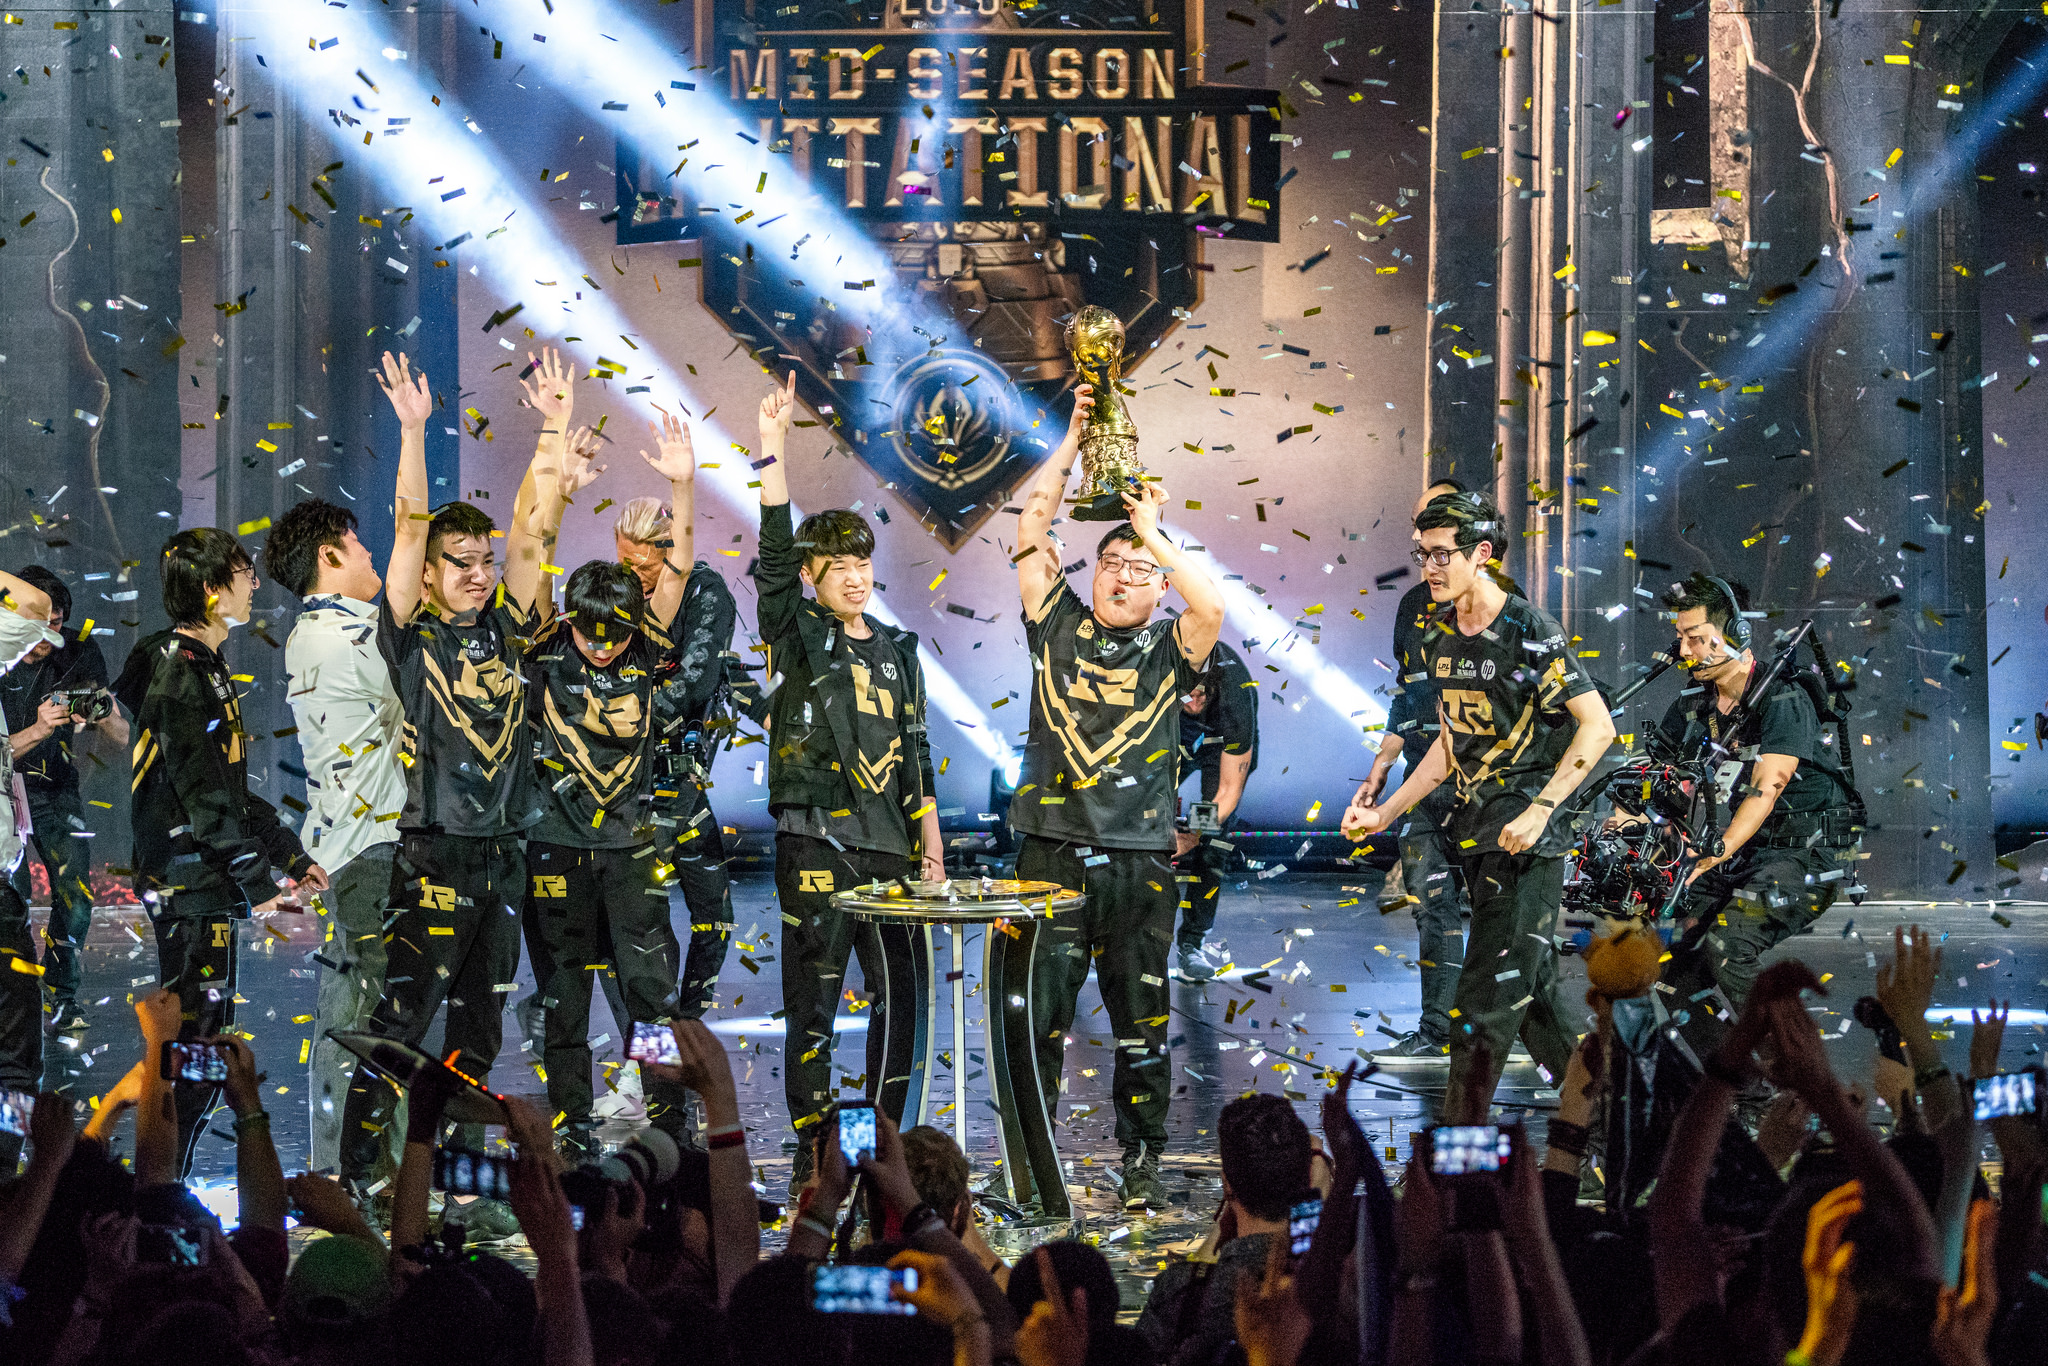 If Rng Win Worlds And Complete The Royal Slam It Will Be The Greatest Season In League History